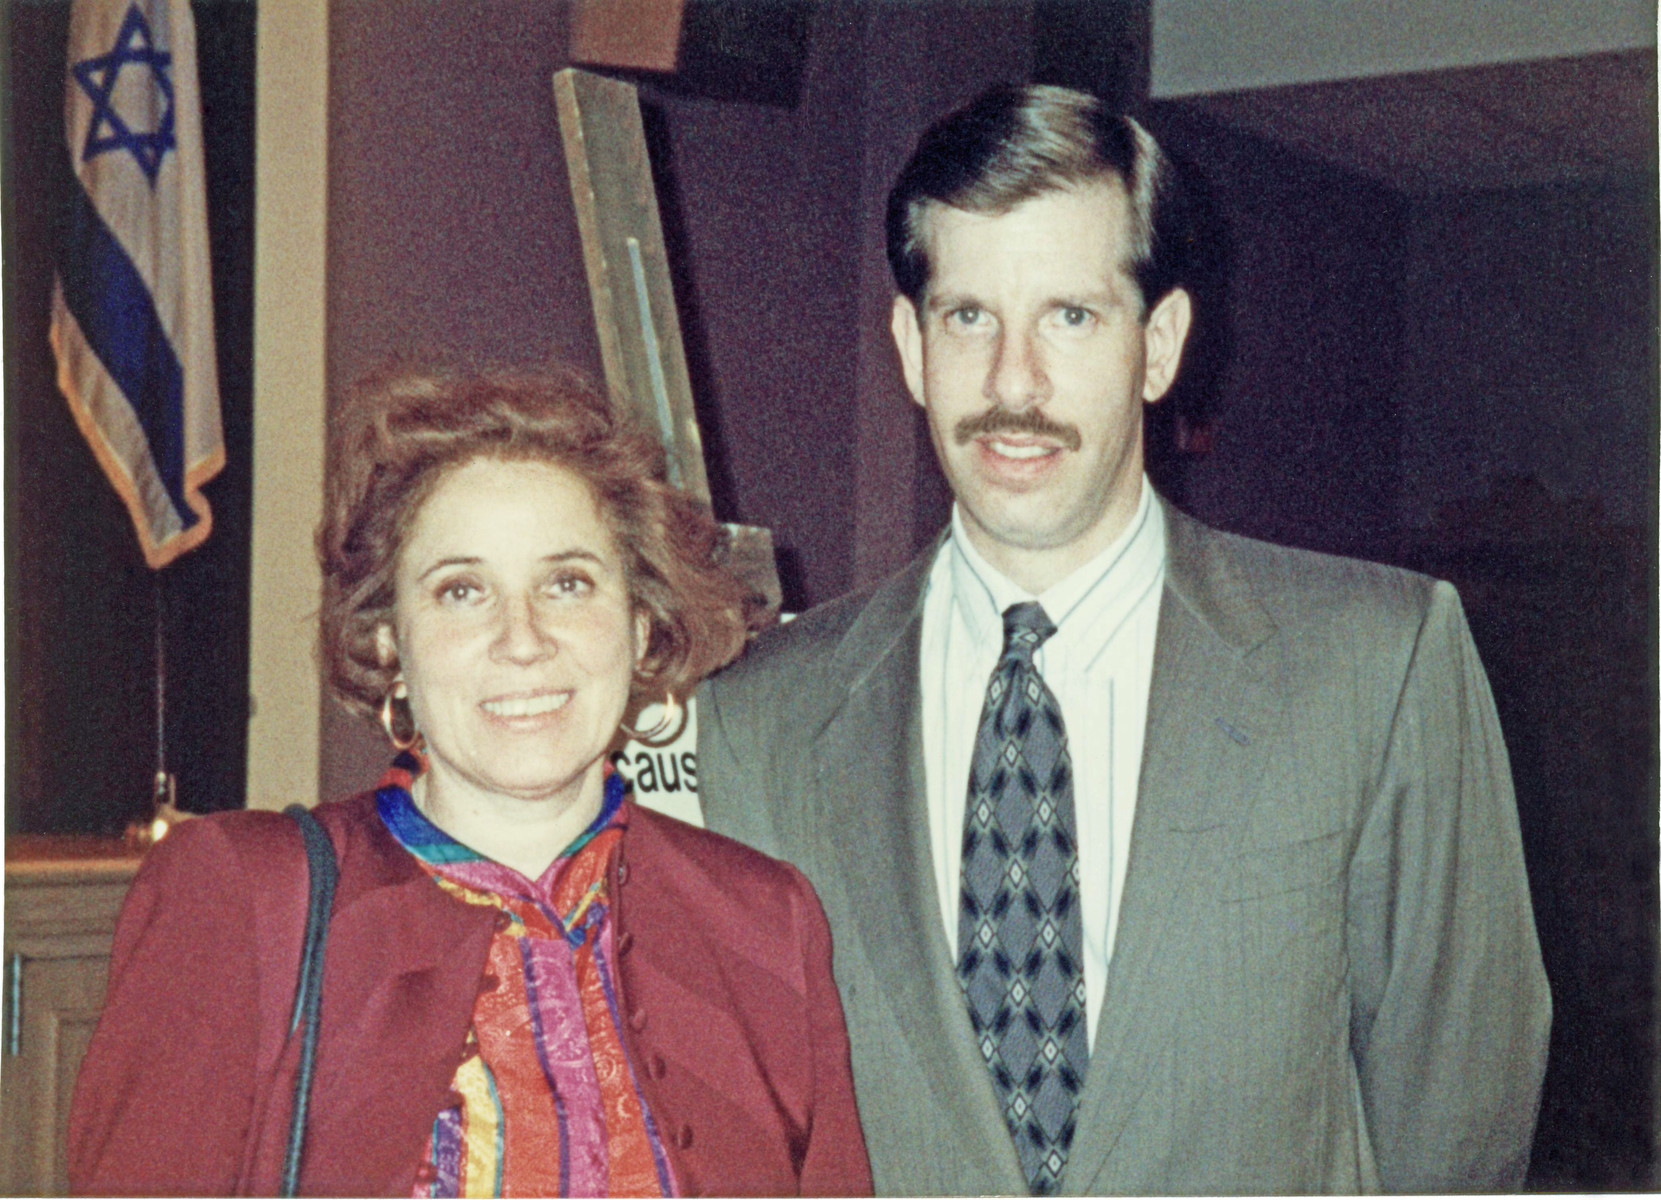 Close-up portrait of Nazi hunter, Beate Klarsfeld and Eli Rosenbaum, Head of the Office of Special Investigations, U.S. Department of Justice.